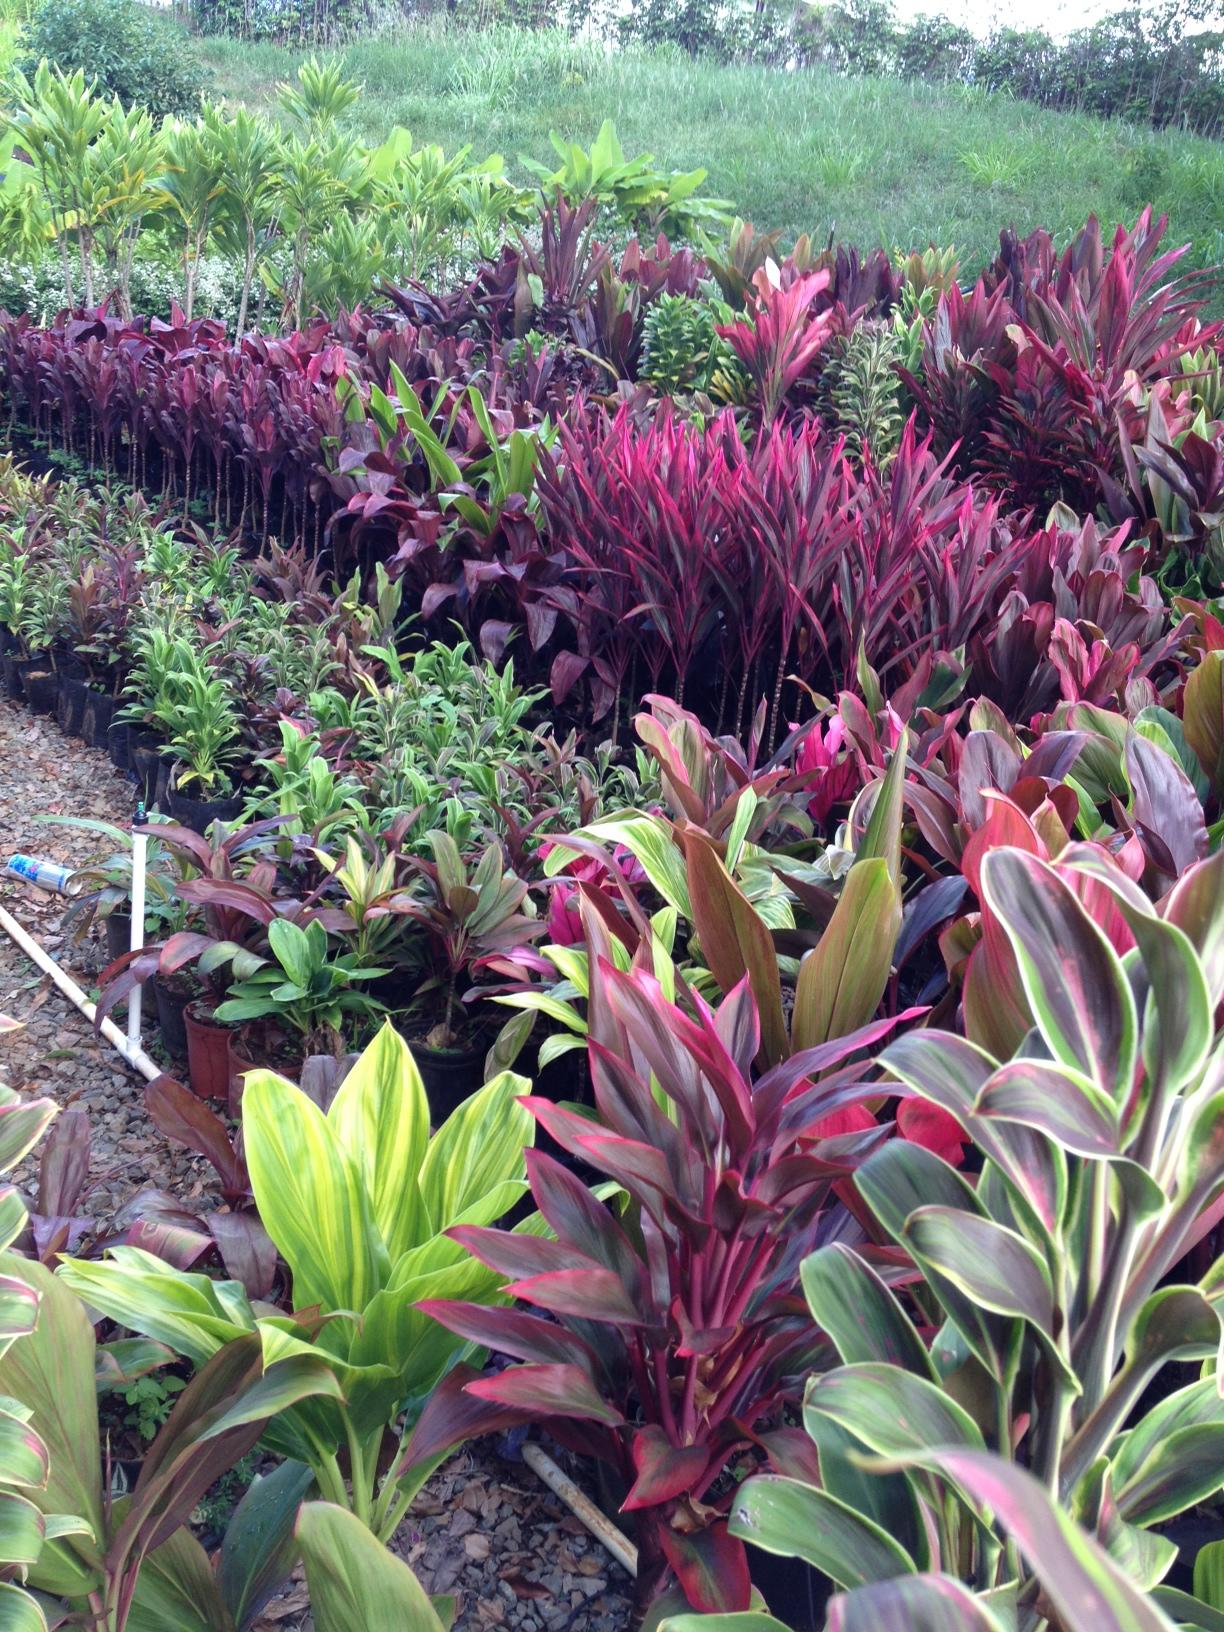 Kauai Hydroseed & Landscape | Official License Records and